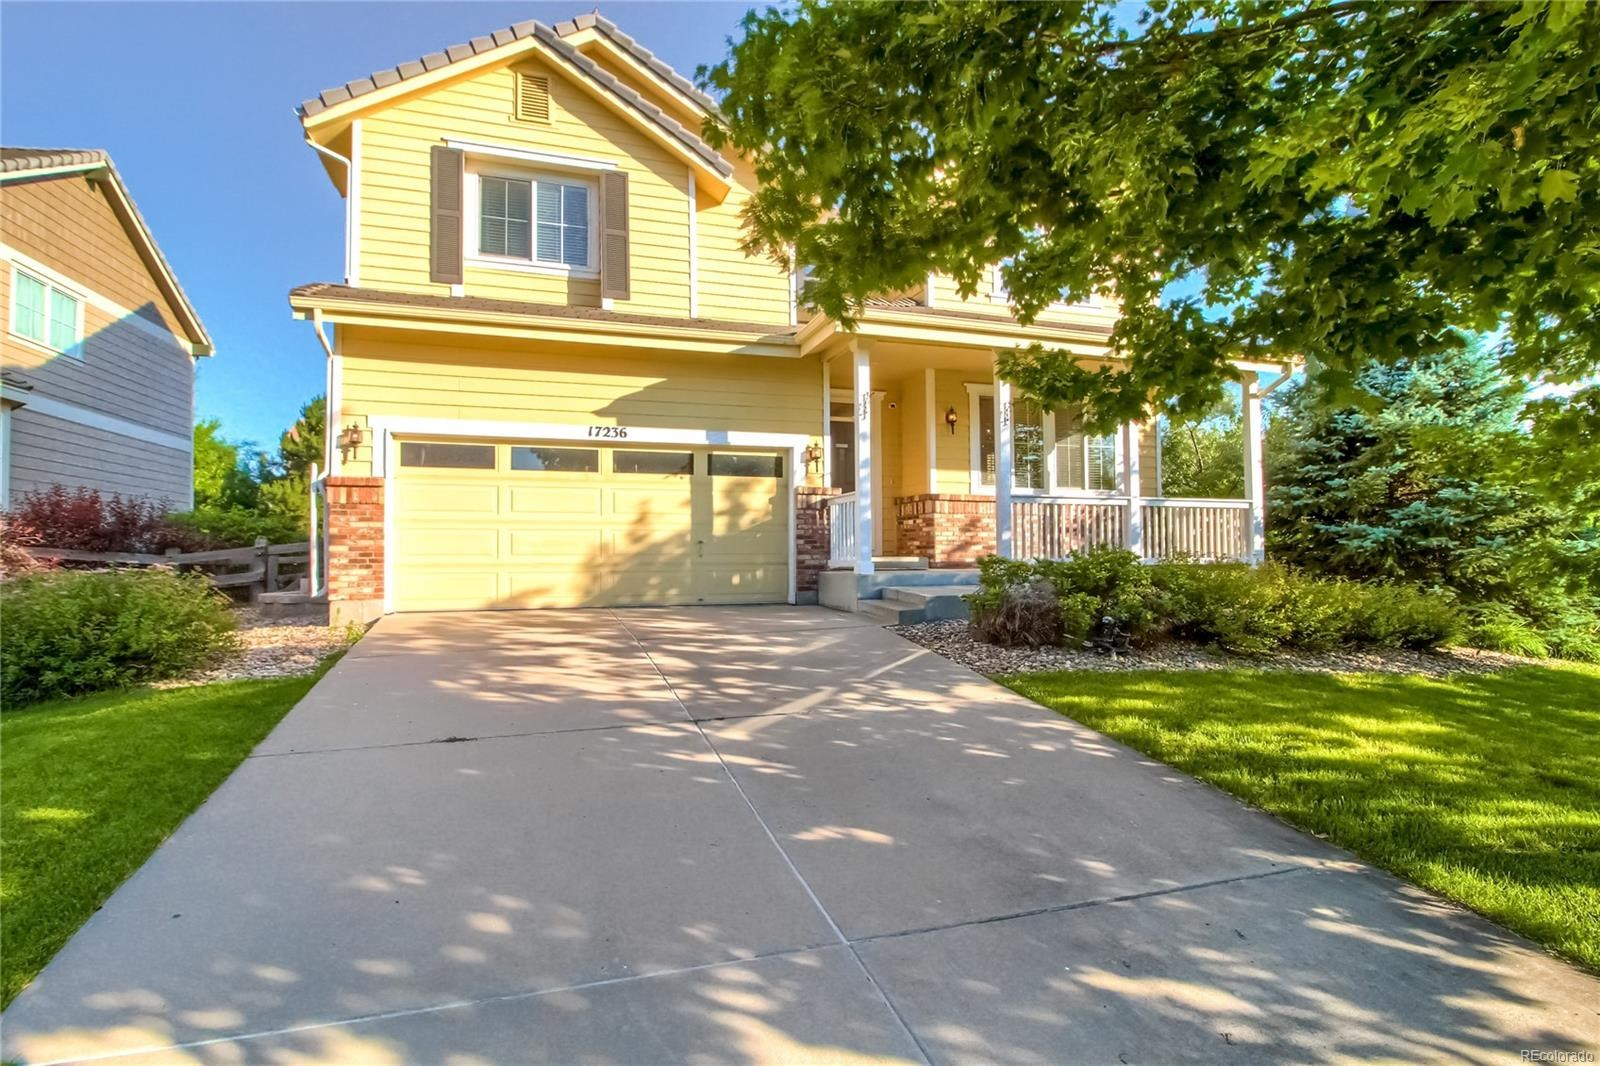 MLS# 7410337 - 1 - 17236 E Lake Lane, Aurora, CO 80016